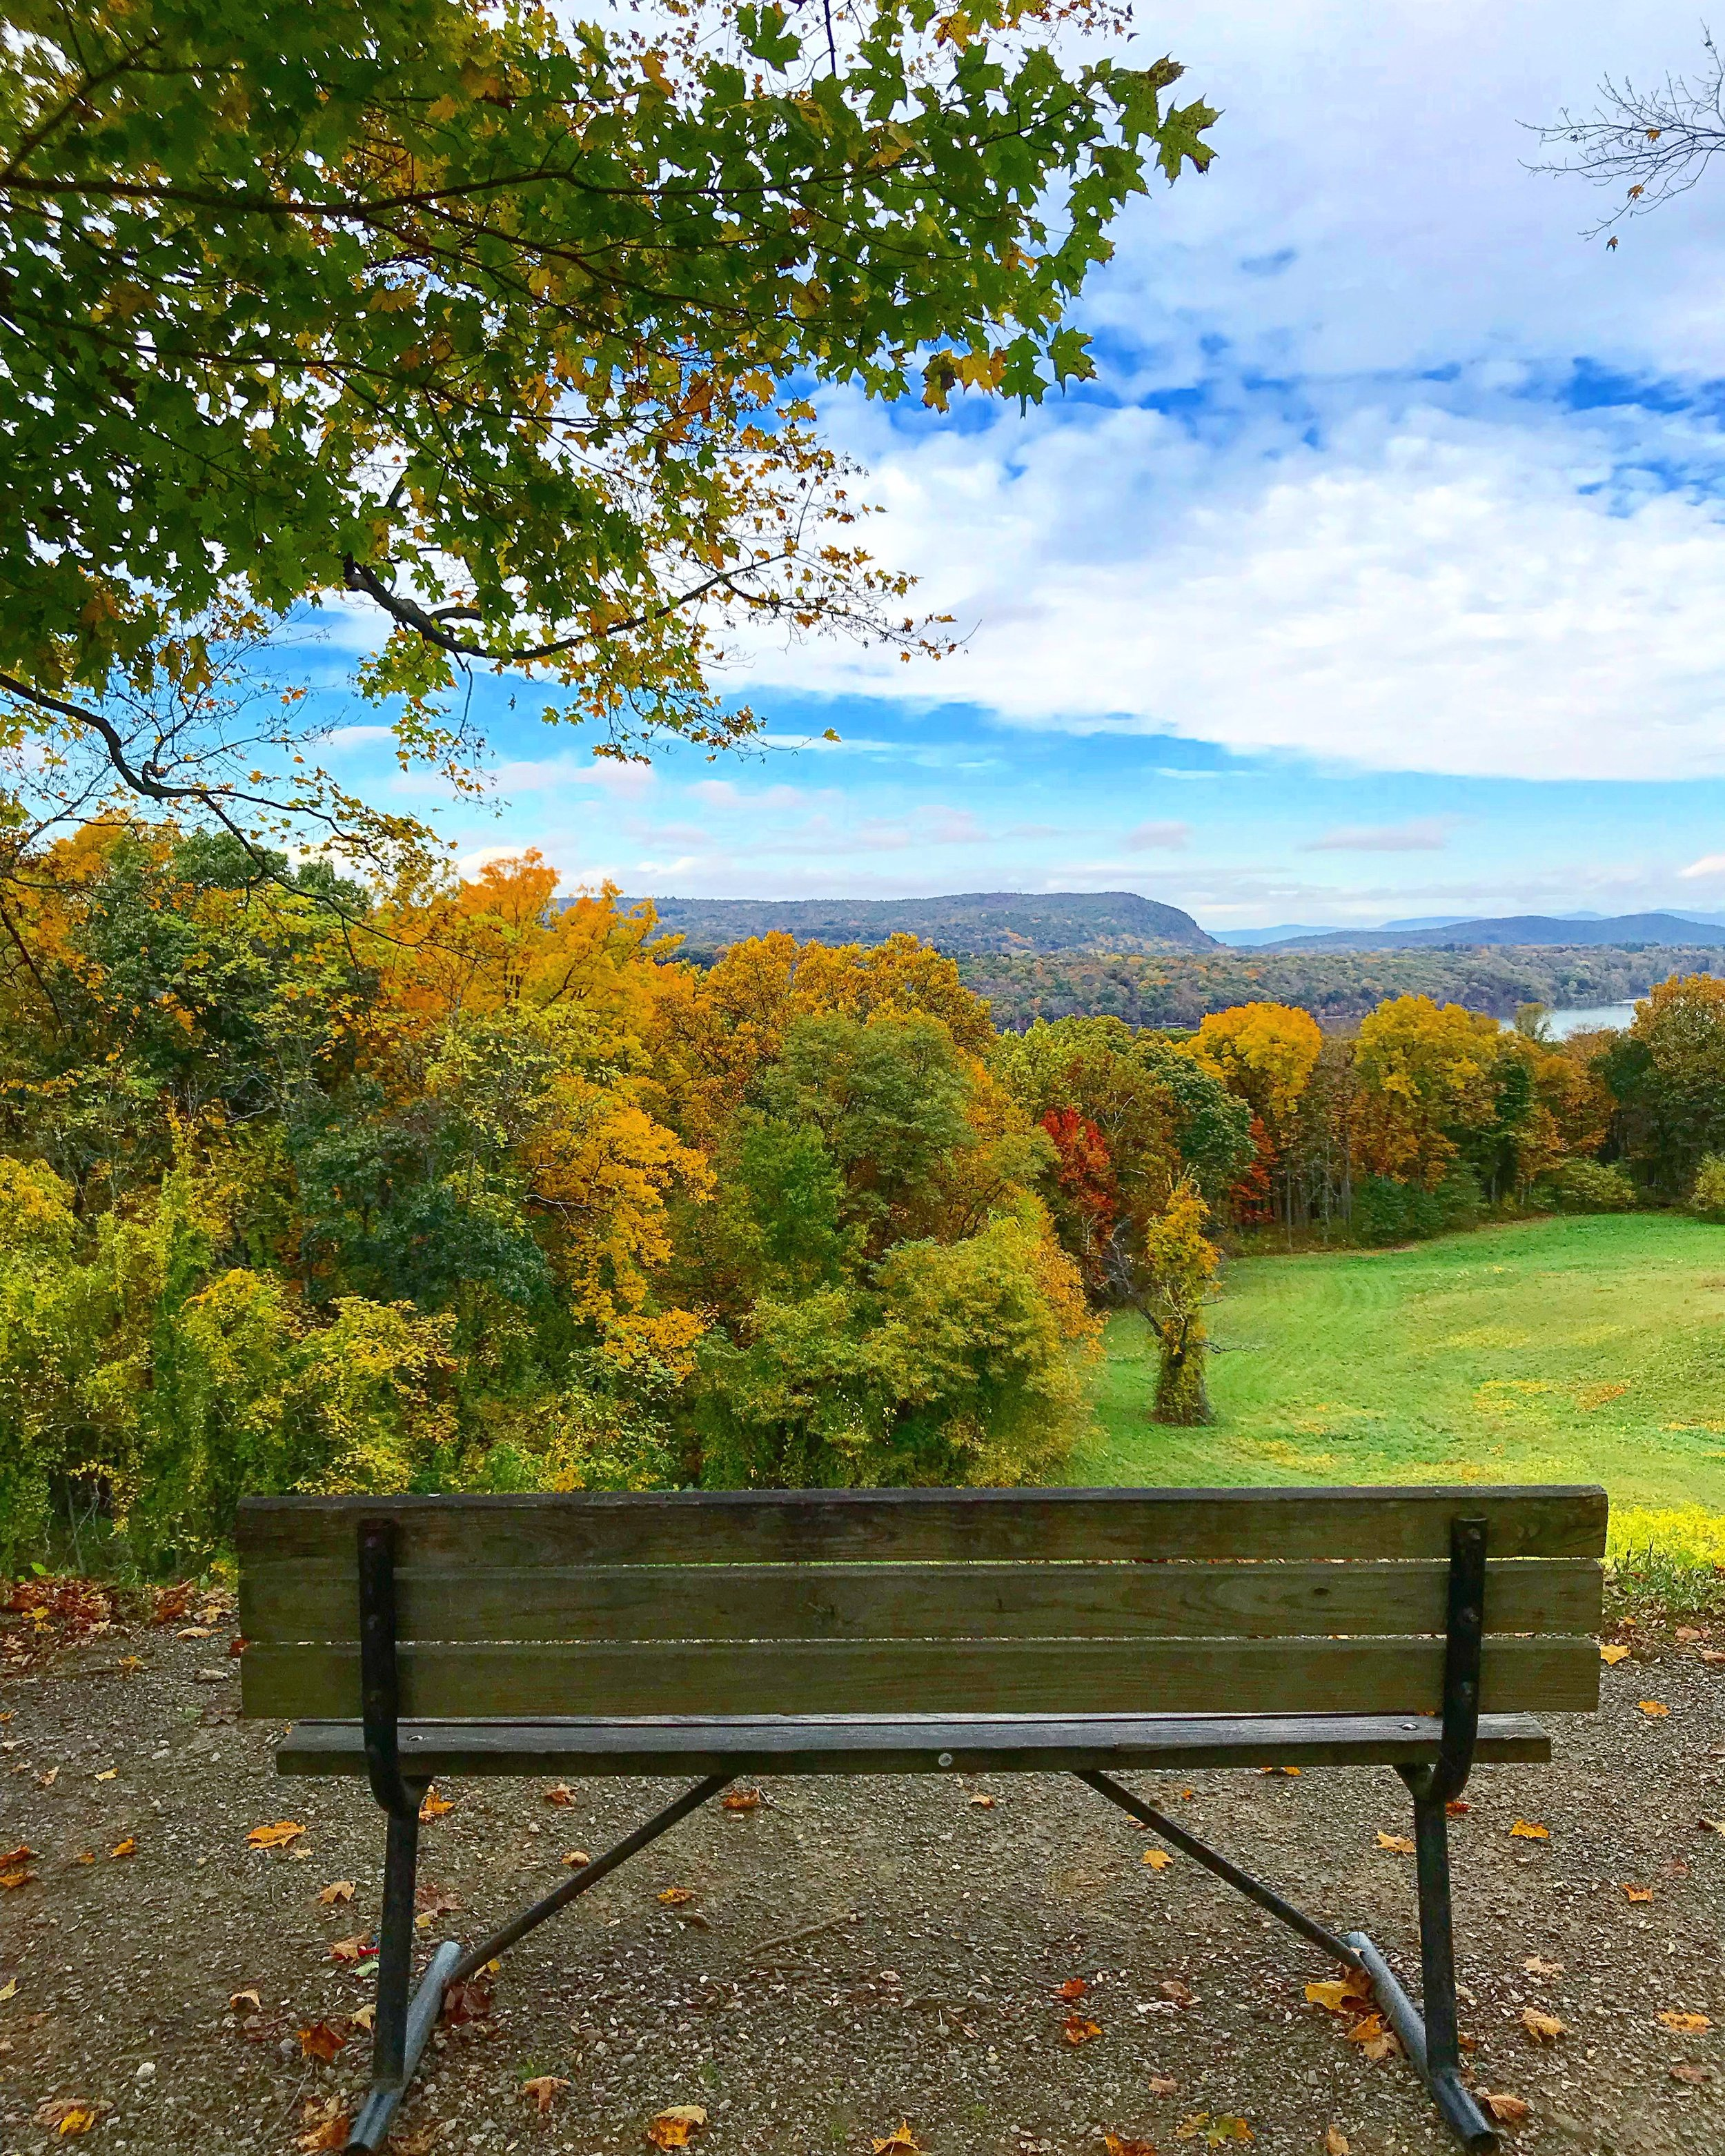 Vanderbilt Mansion Park, Bench with a view, Hyde Park, NY - October 25th 2017.